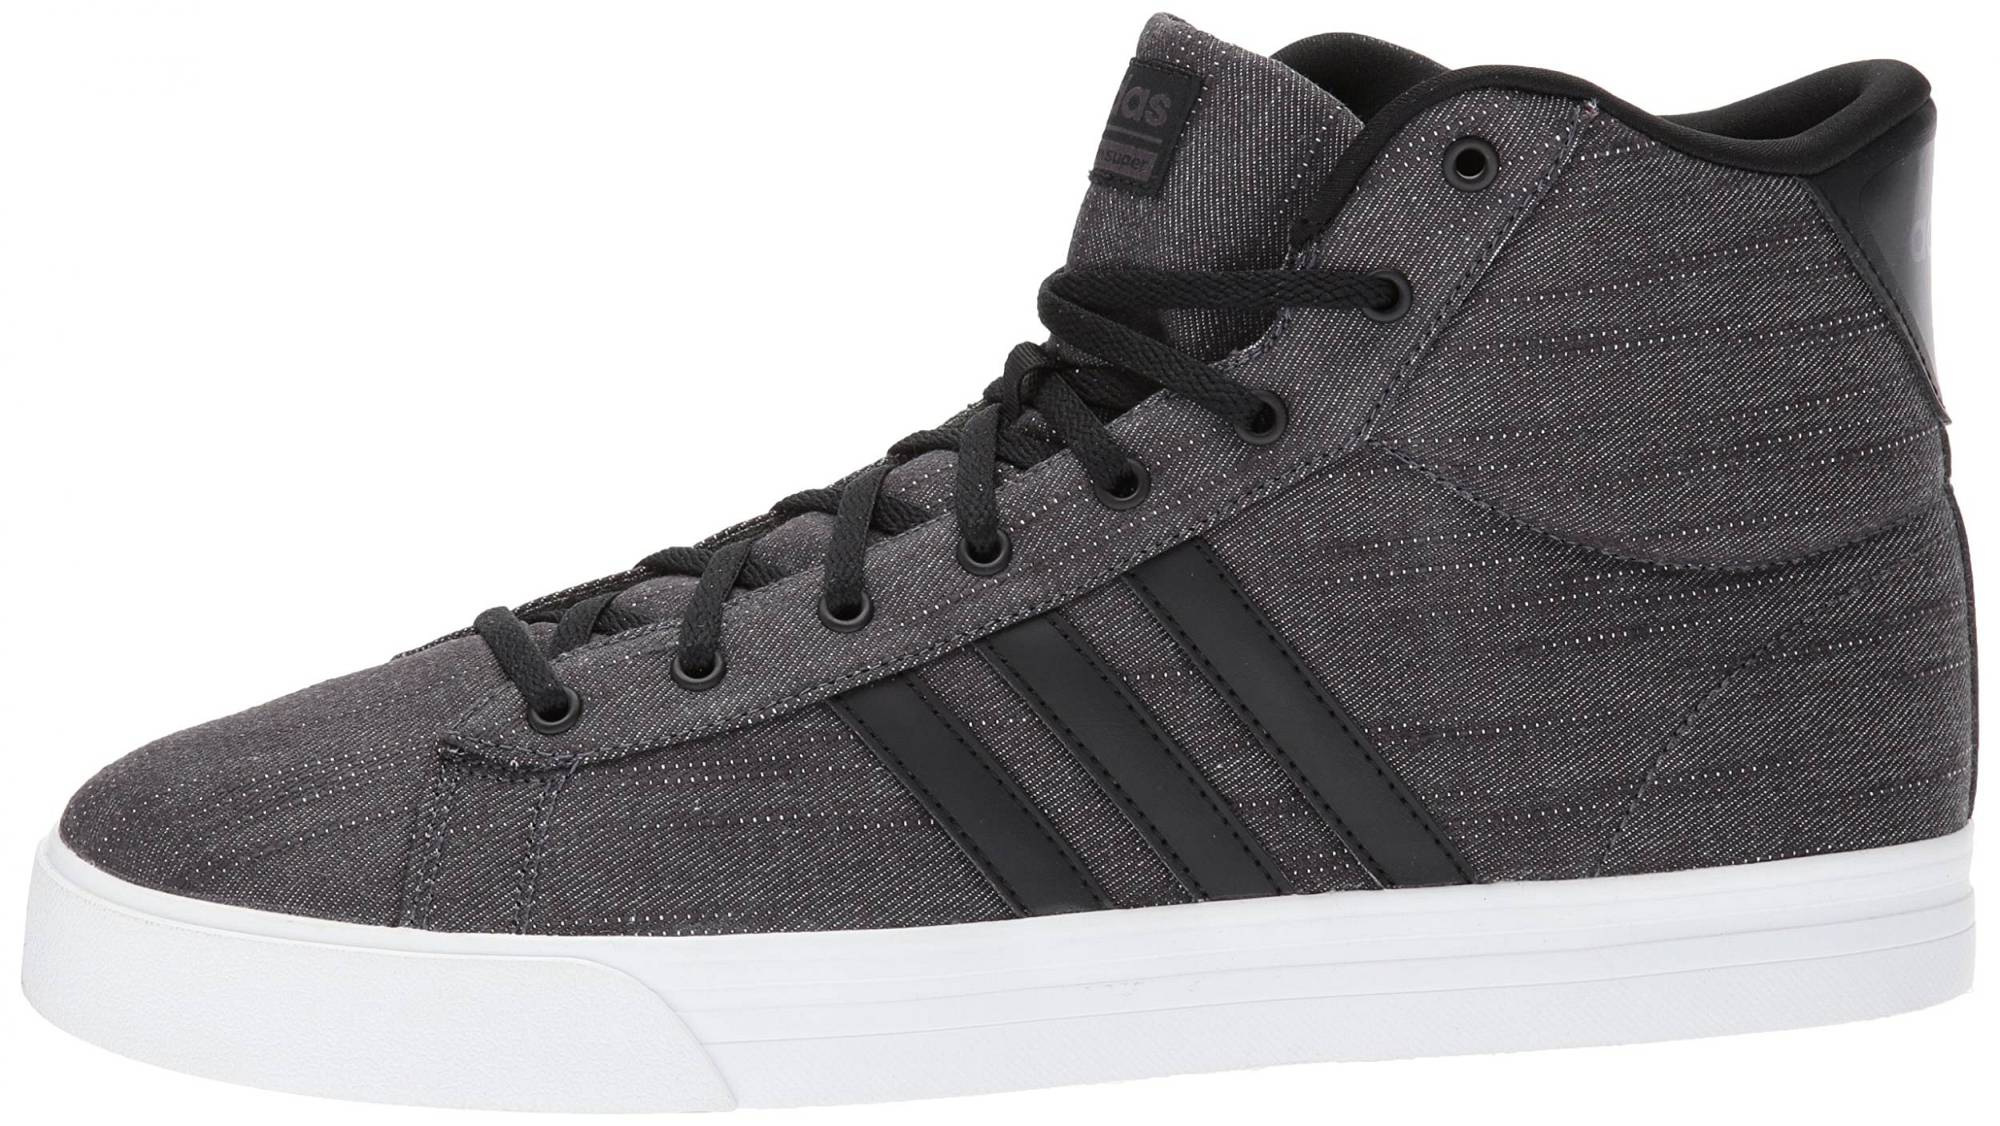 Adidas Cloudfoam Super Daily Mid – Shoes Reviews & Reasons To Buy